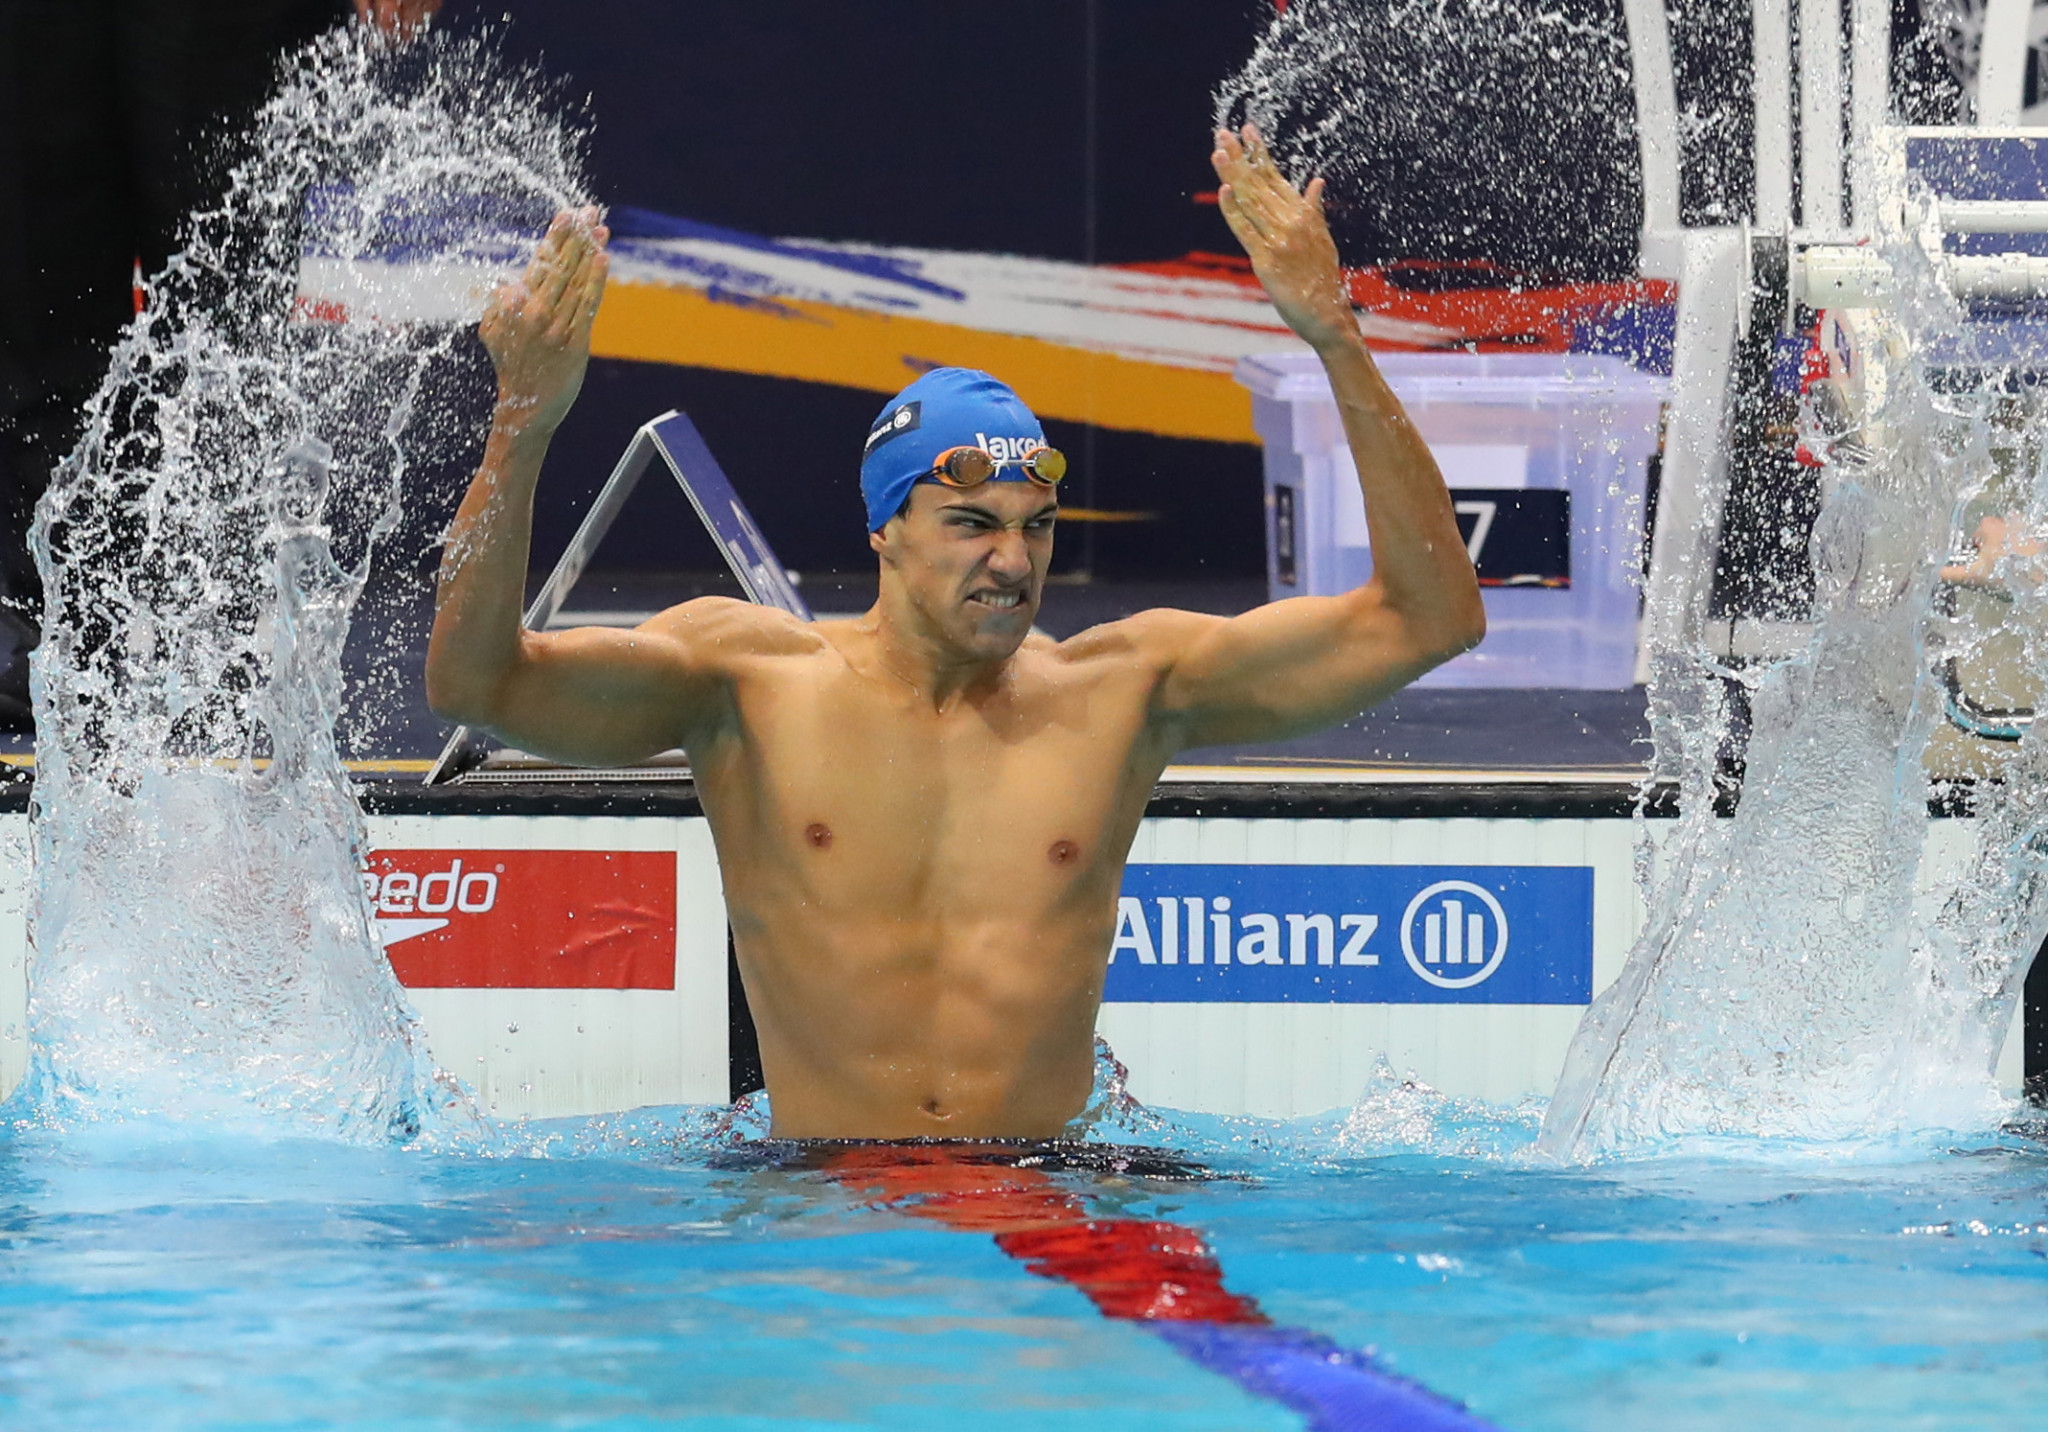 Simone Barlaam of Italy continued his record-breaking form to secure his second title of the Championships ©Getty Images